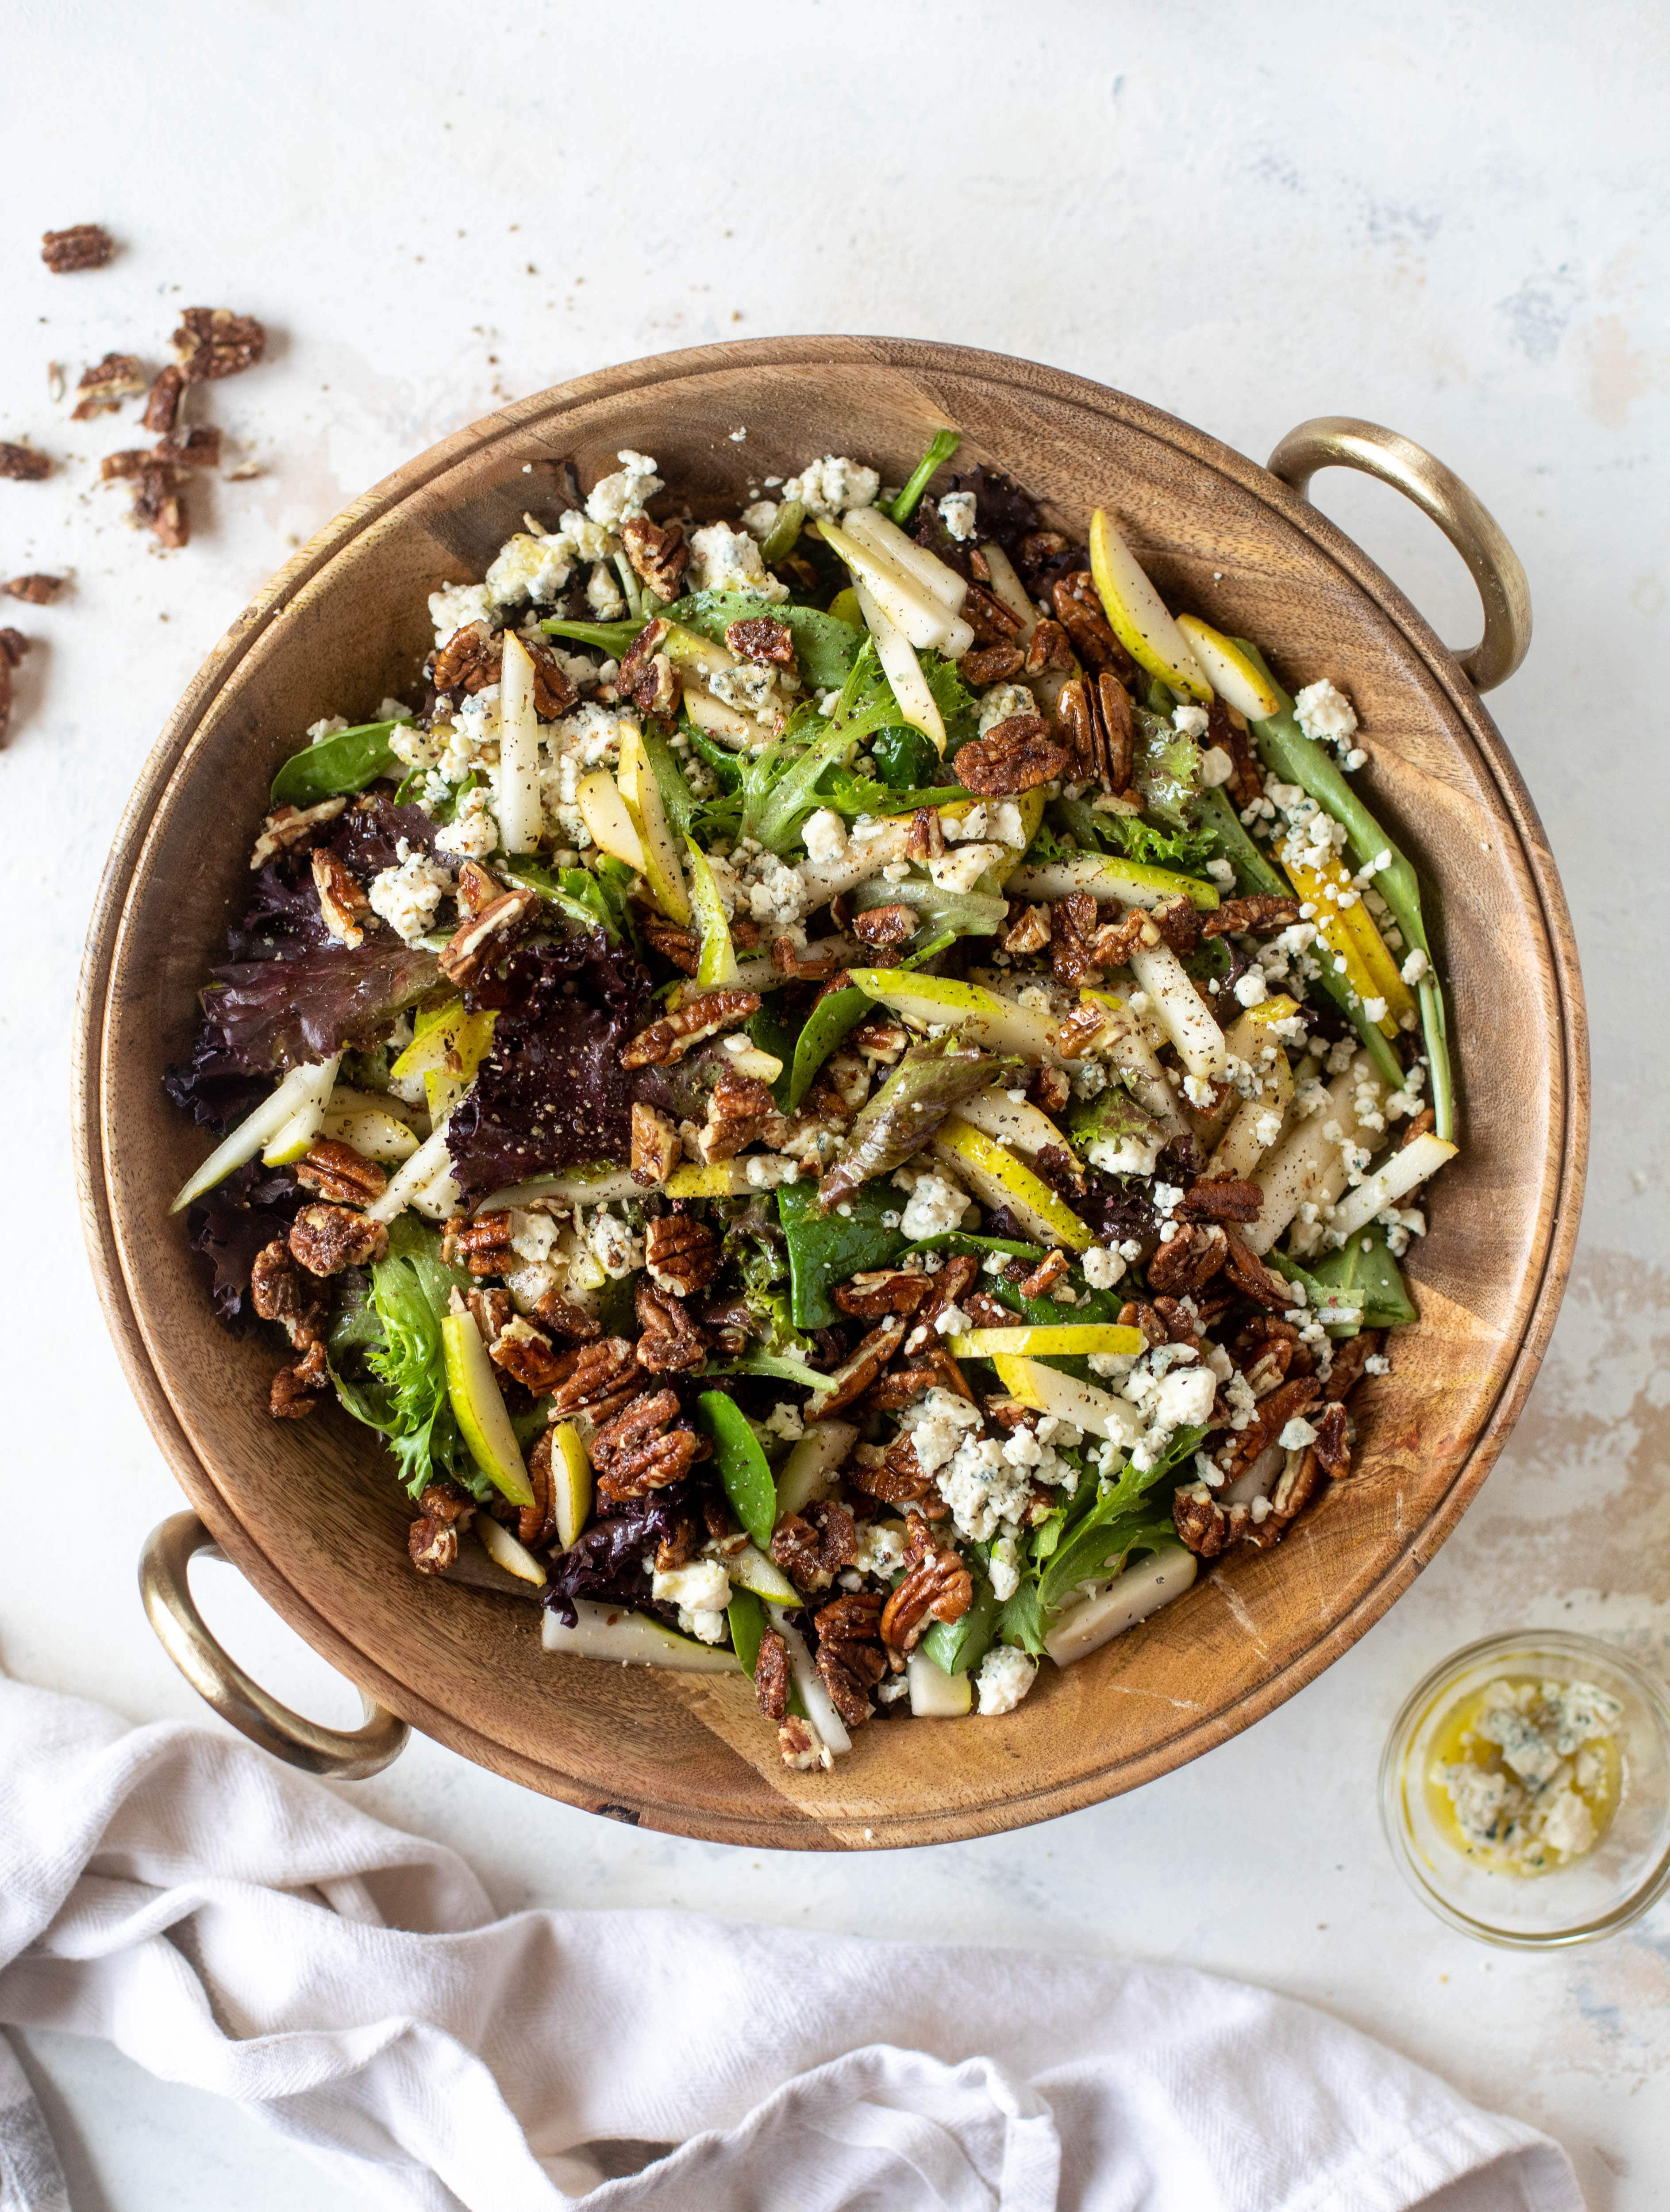 This pear gorgonzola is the perfect simple greens salad for the holiday and winter season! Topped with sweet and spicy pecans and champagne vinaigrette!